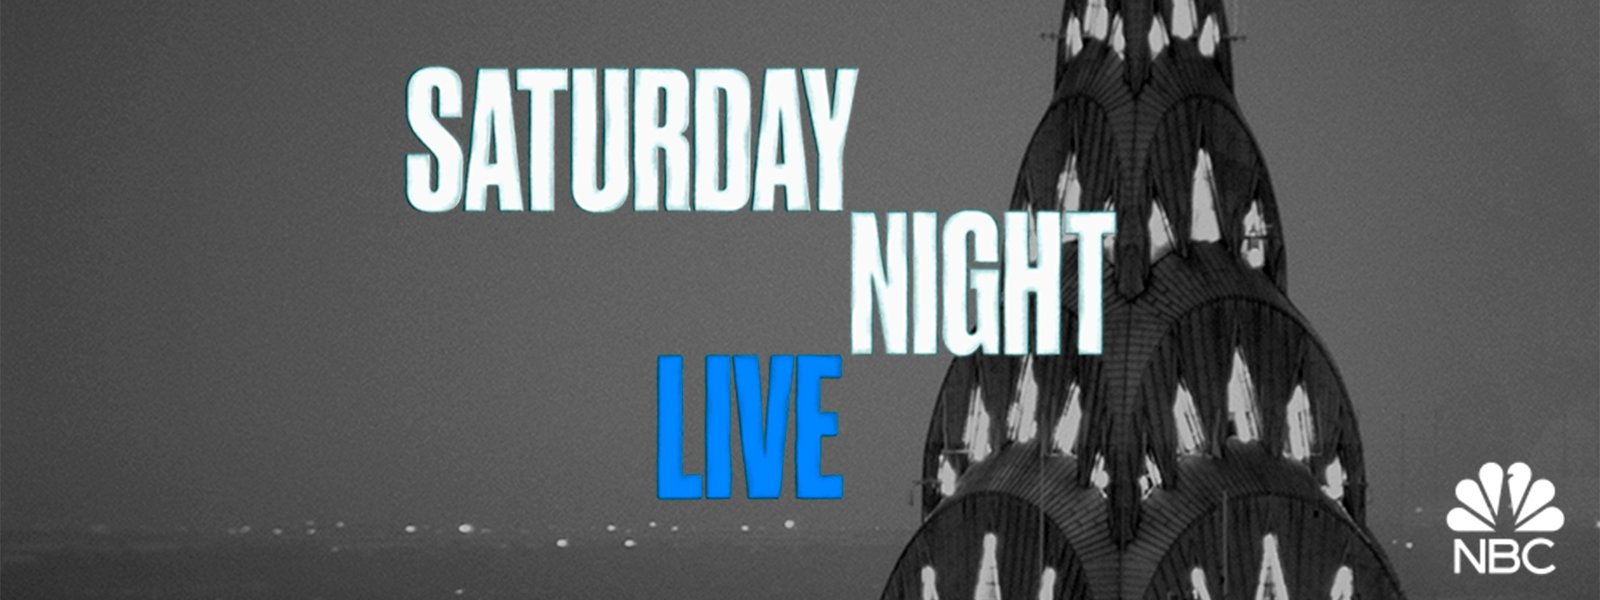 Watch Saturday Night Live Online At Hulu - Us zip code for hulu plus